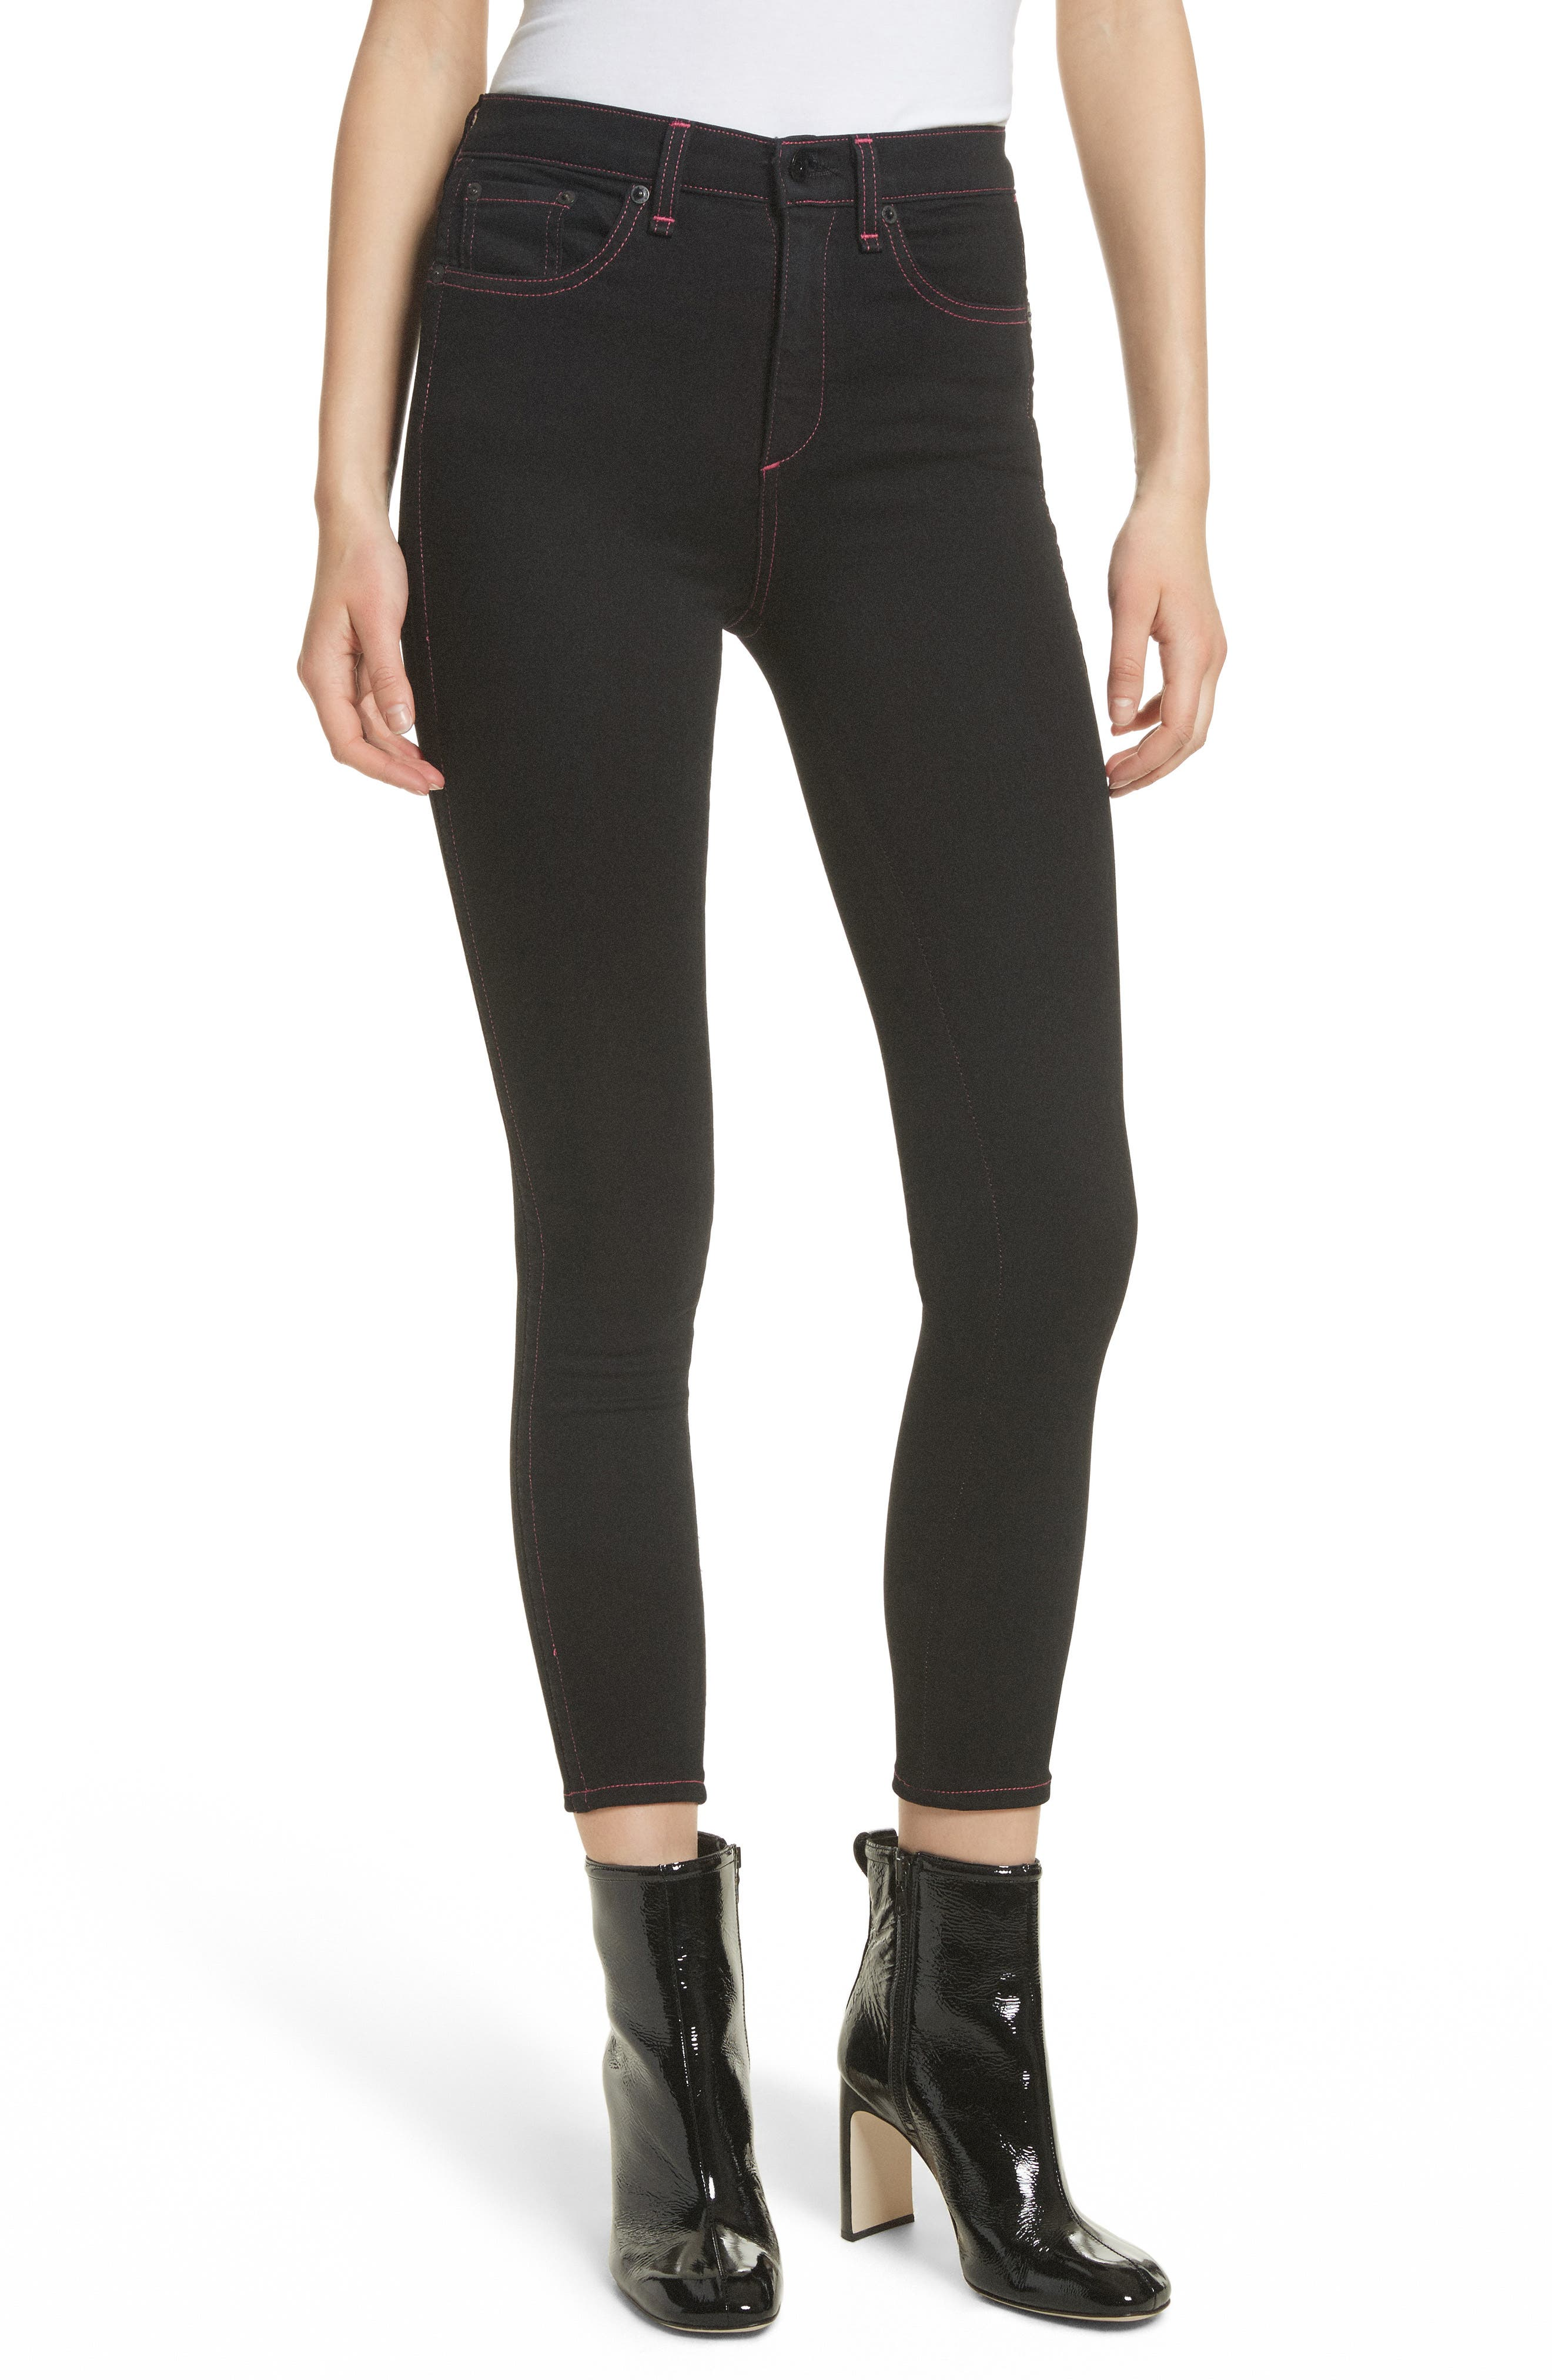 Miich High Rise Crop Skinny Jeans,                             Main thumbnail 1, color,                             Black Stitch